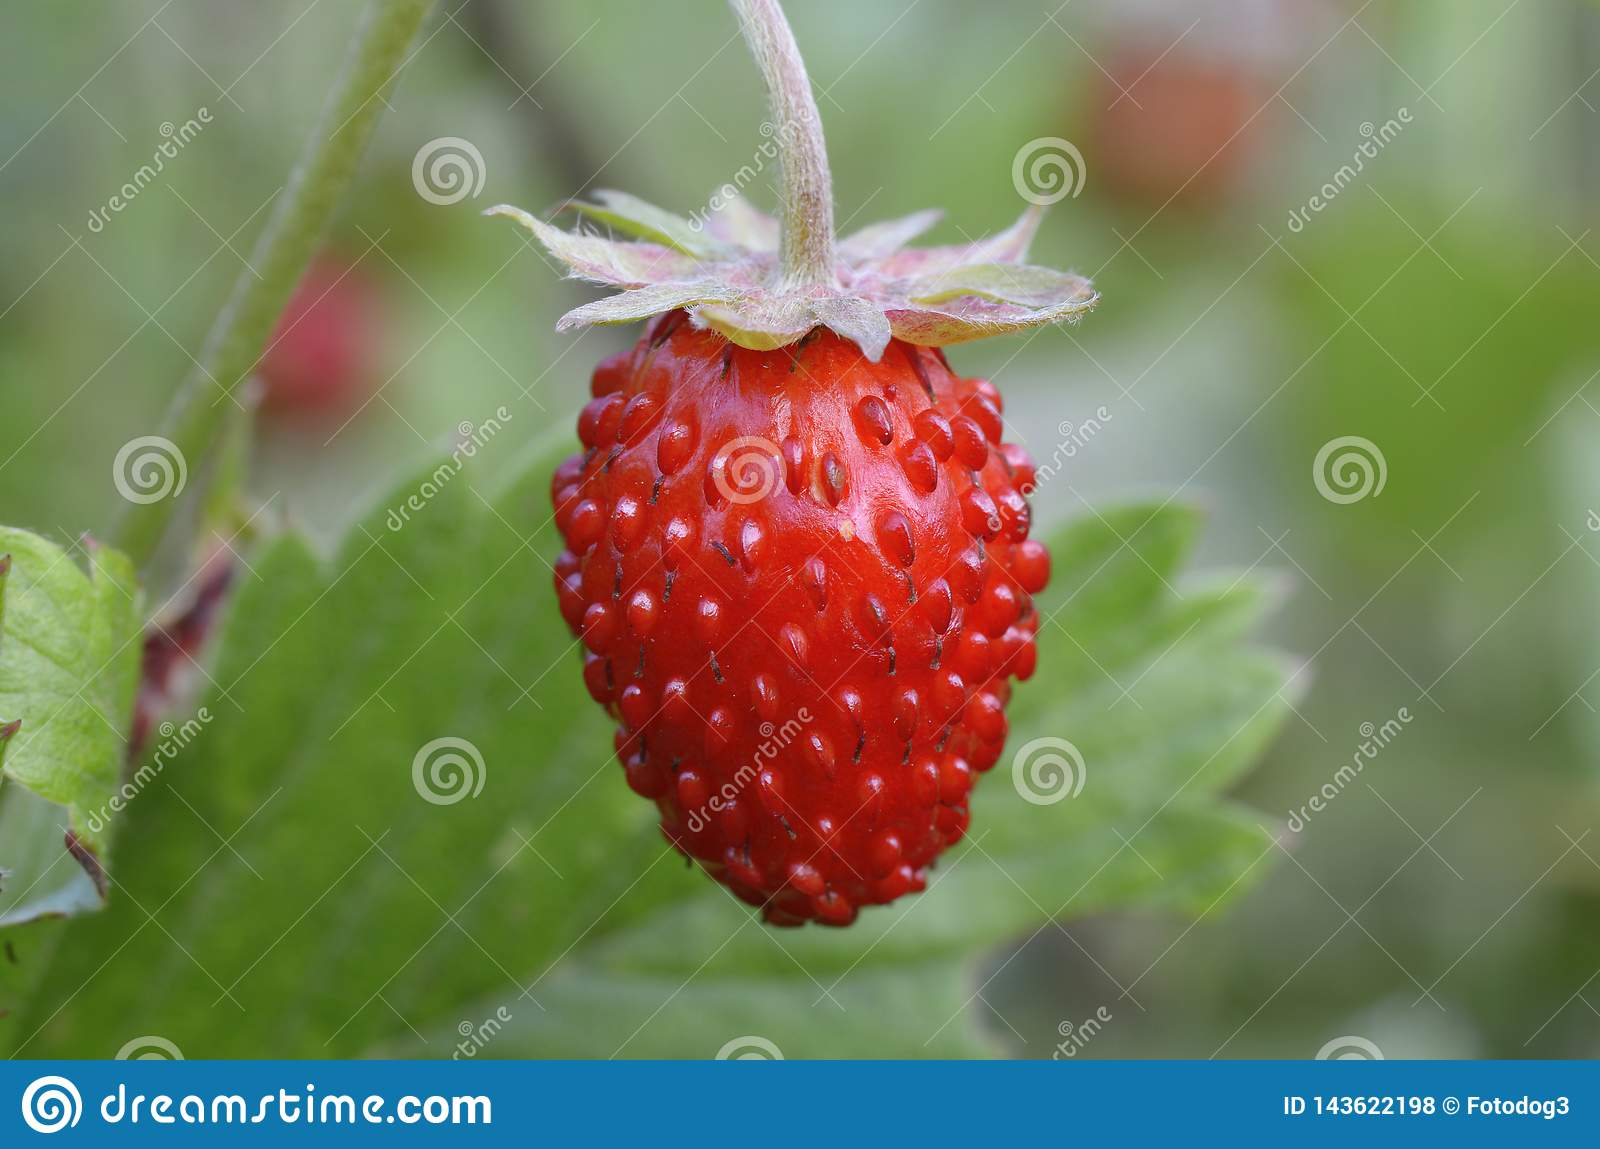 A ripe strawberry in front of blurred background